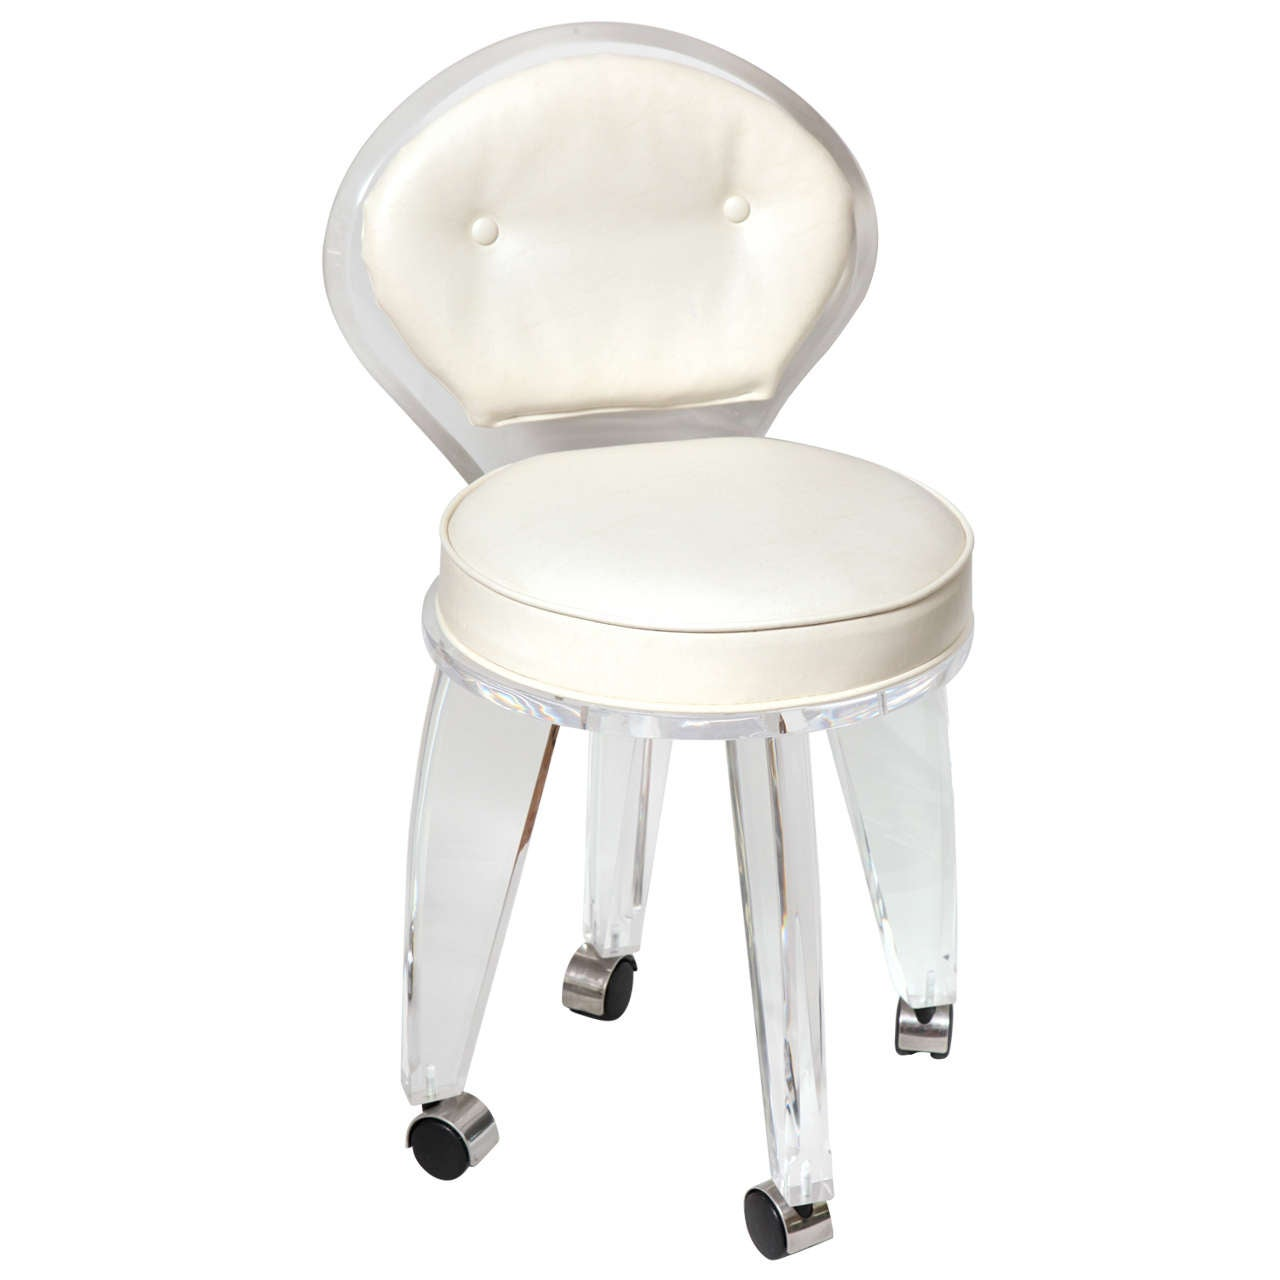 Lucite upholstered rolling swivel vanity chair at 1stdibs - Acrylic vanity chair ...